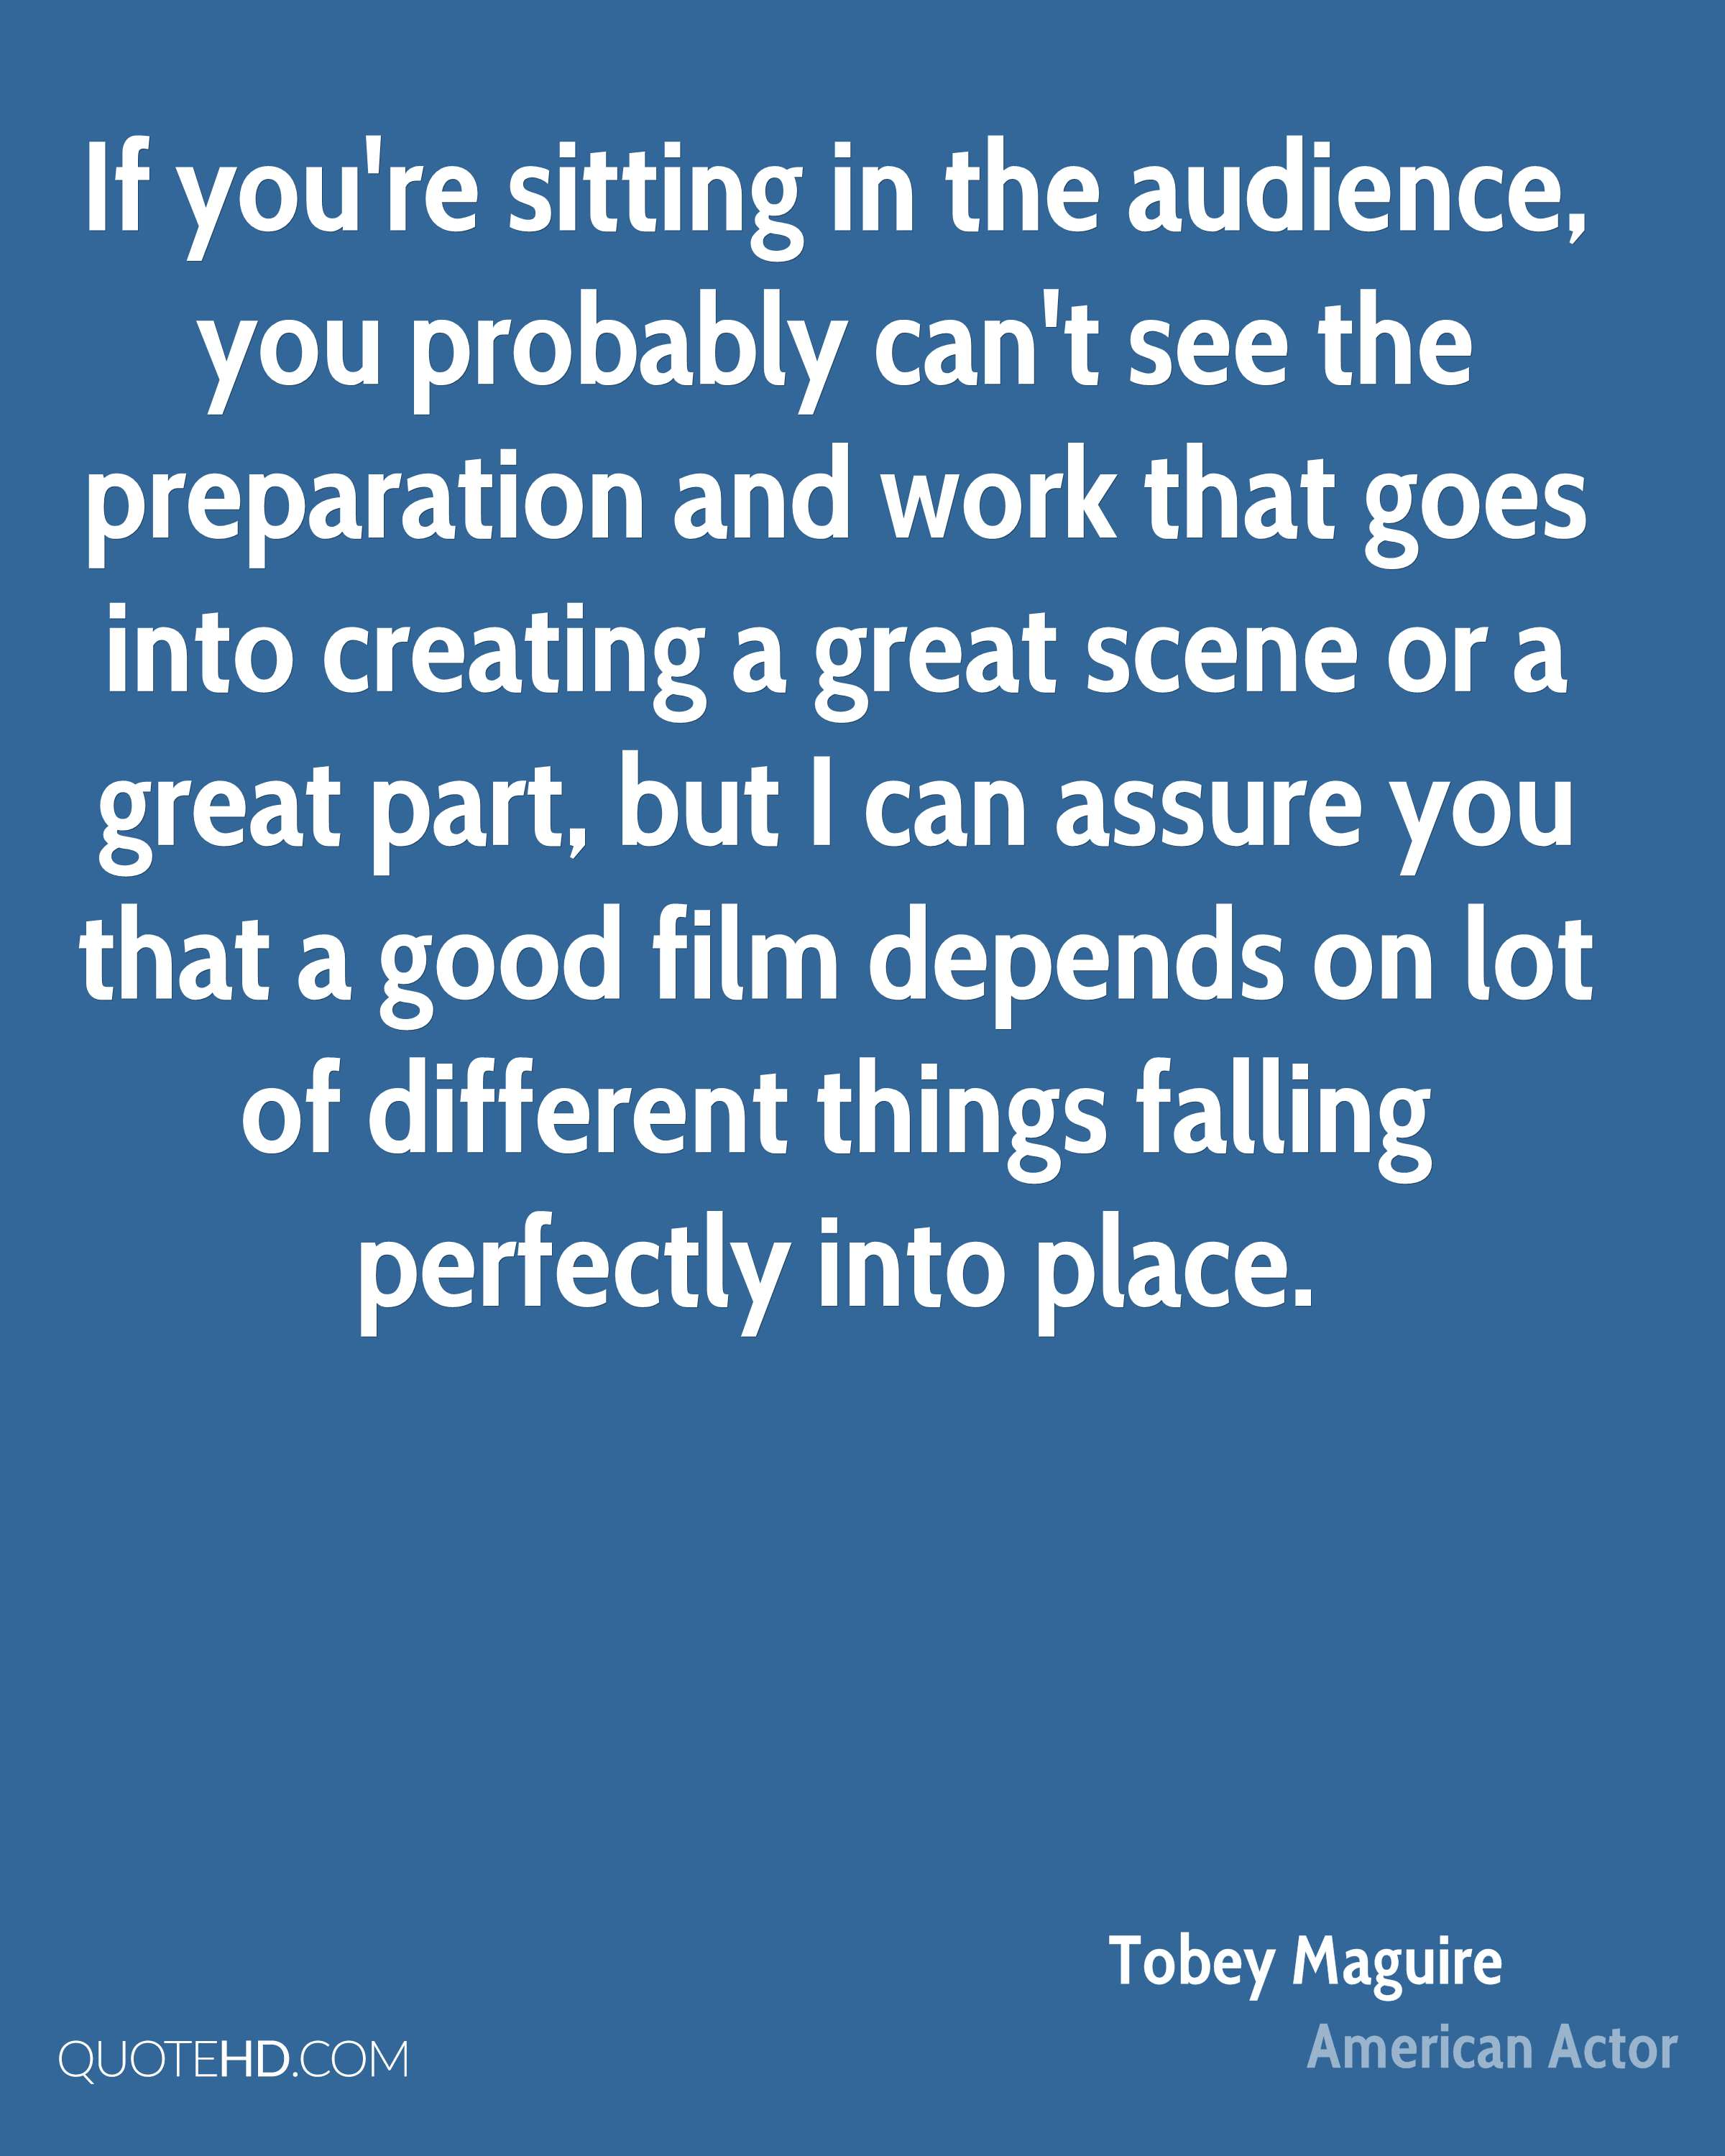 If you're sitting in the audience, you probably can't see the preparation and work that goes into creating a great scene or a great part, but I can assure you that a good film depends on lot of different things falling perfectly into place.